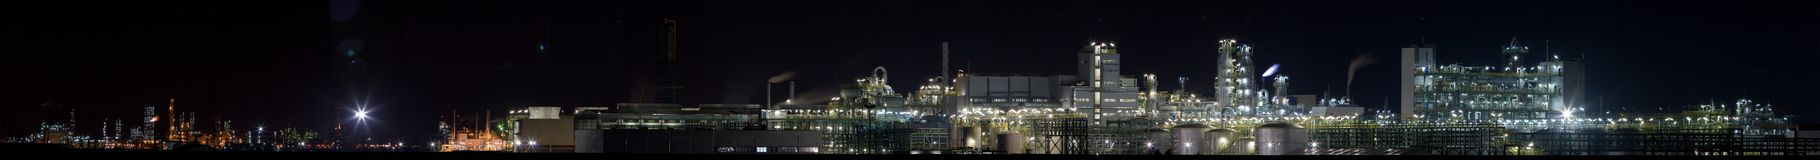 Chemical plant in night(Panoramic View 3) Royalty Free Stock Photos